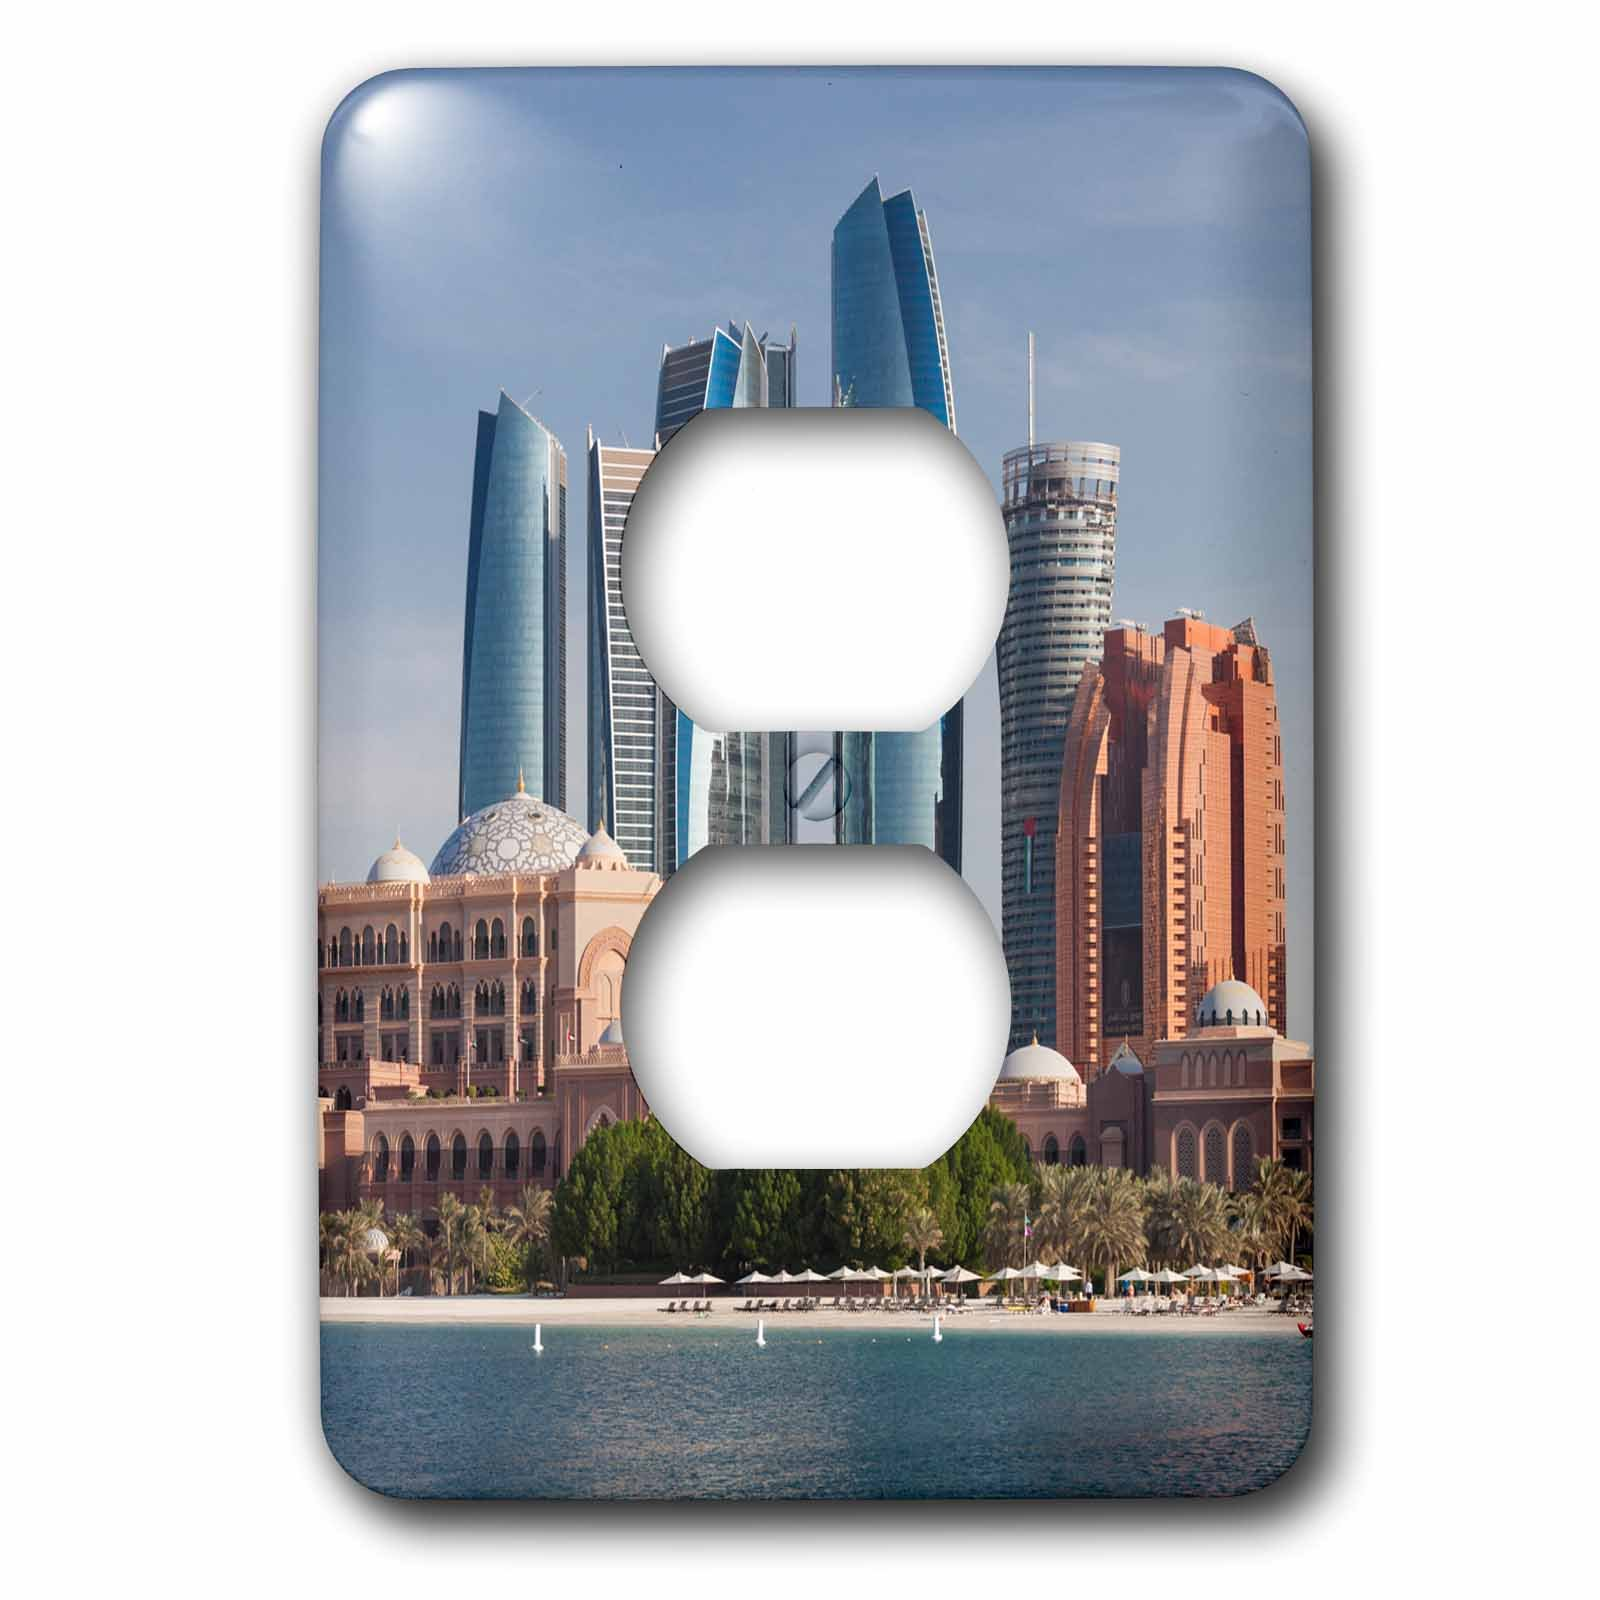 3dRose Danita Delimont - Cities - UAE, Abu Dhabi. Etihad Towers and Emirates Palace Hotel - Light Switch Covers - 2 plug outlet cover (lsp_277131_6)